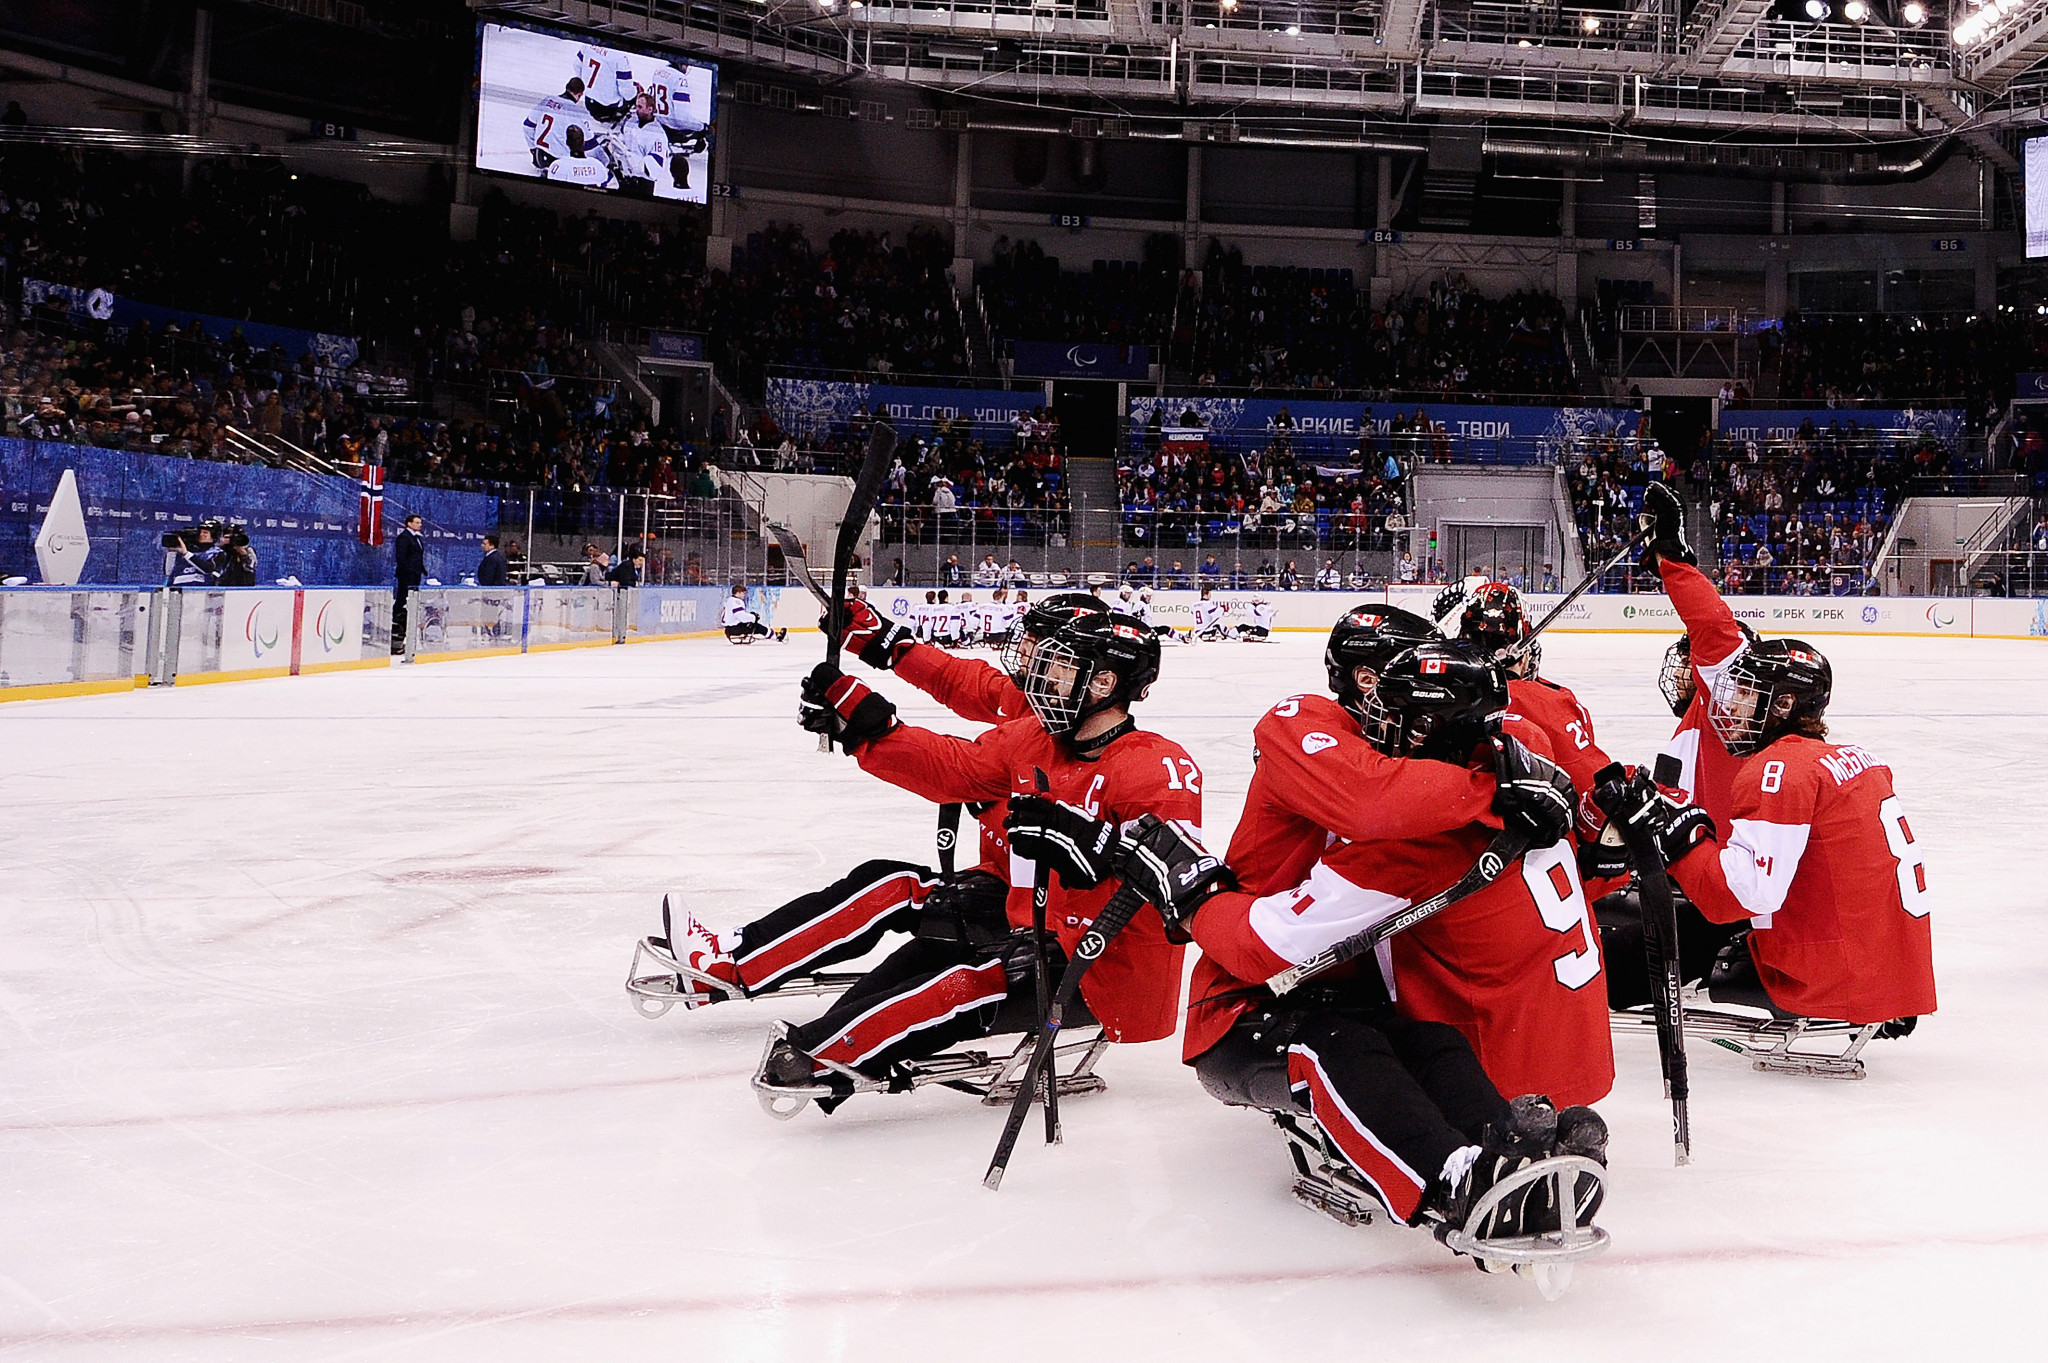 Canada and Russian Paralympic Committee finish top of groups at World Para Ice Hockey Championships